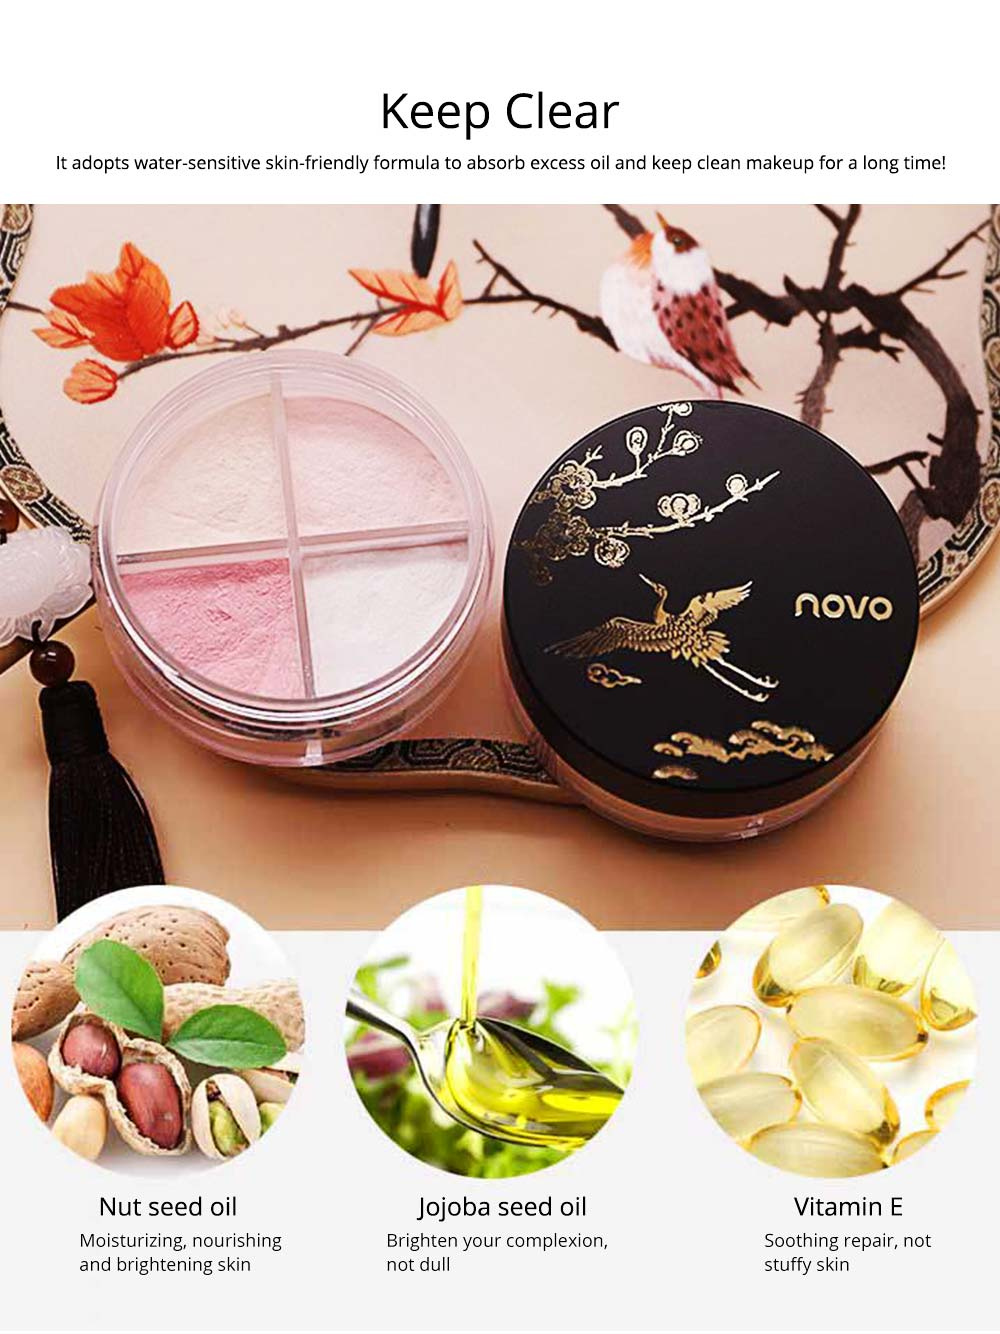 4 Colors Loose Powder Cosmetic, Finishing Powder with Imperial Palace Printed Shell, NOVO Moisture Lasting & Waterproof Powder 1